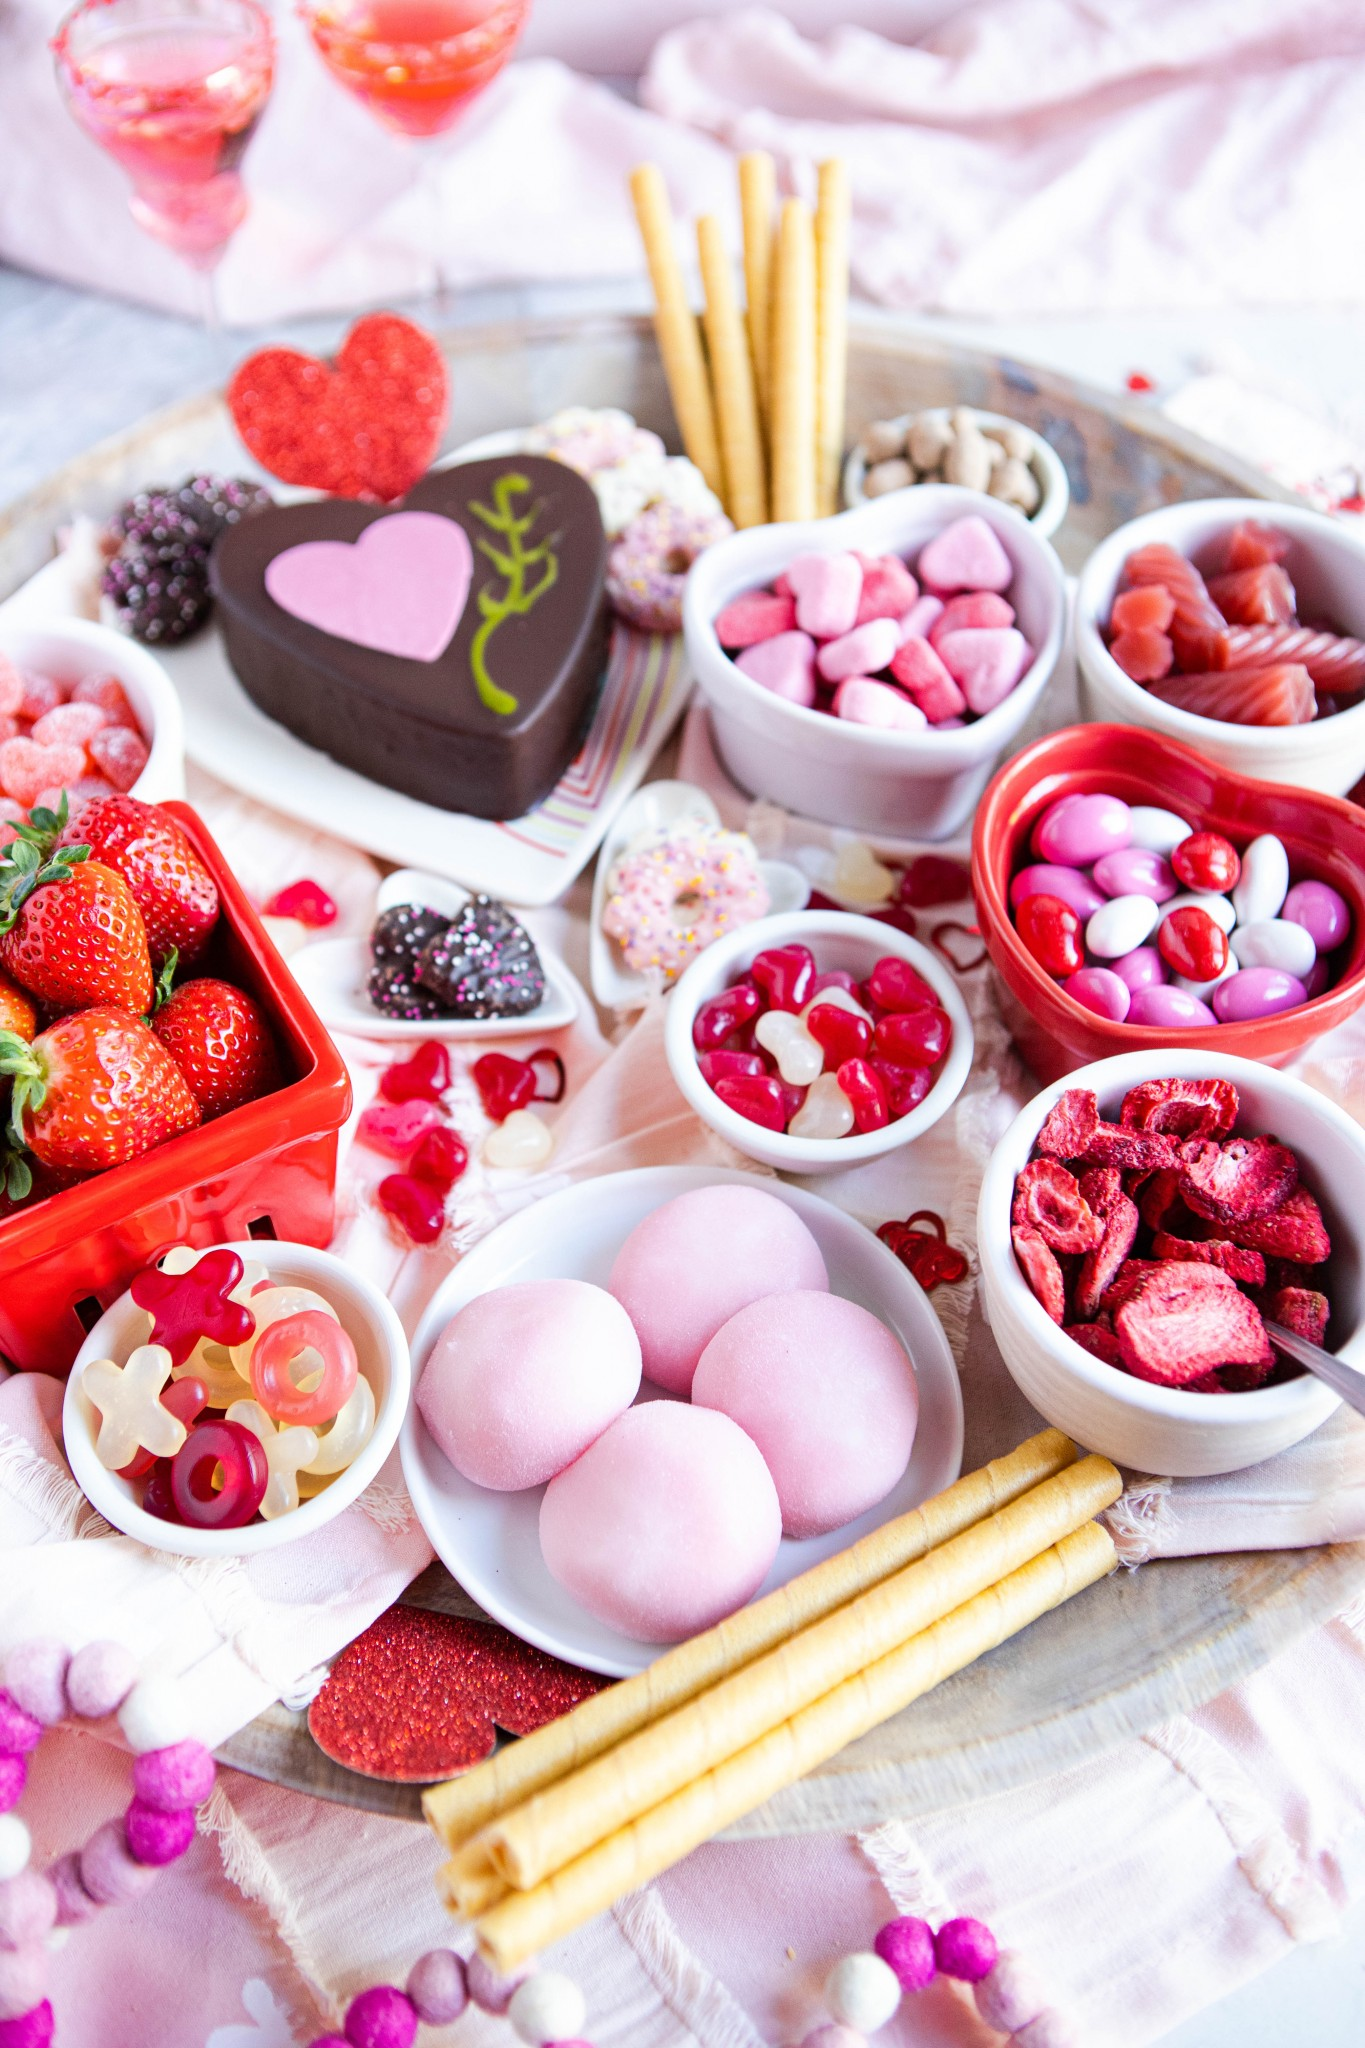 red and pink desserts arranged artfully on a platter for Valentine's Day